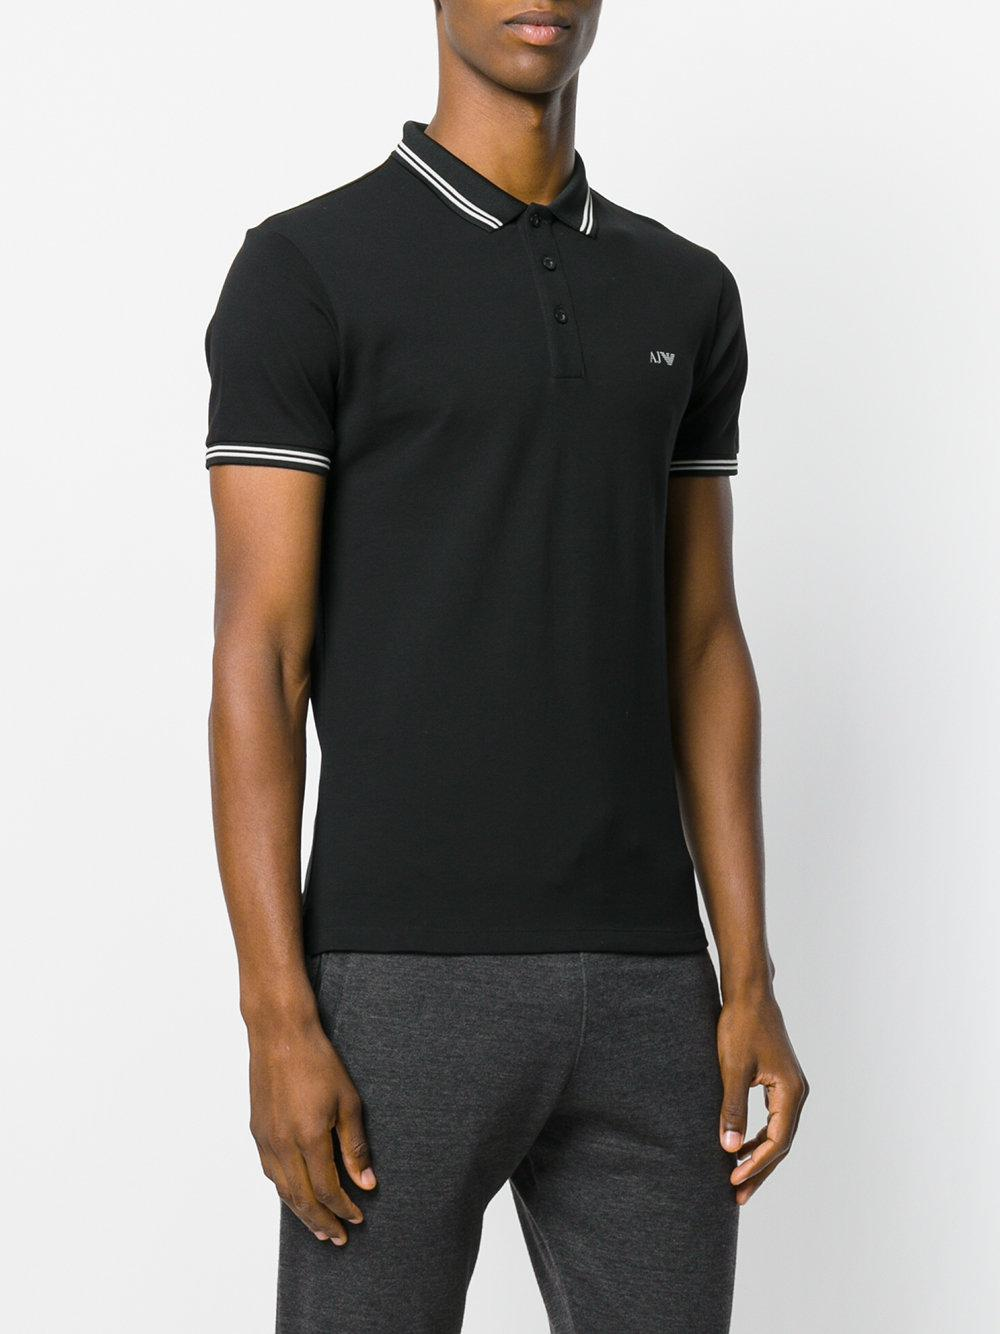 Lyst armani jeans embroidered logo polo shirt in black for Polo shirt and jeans